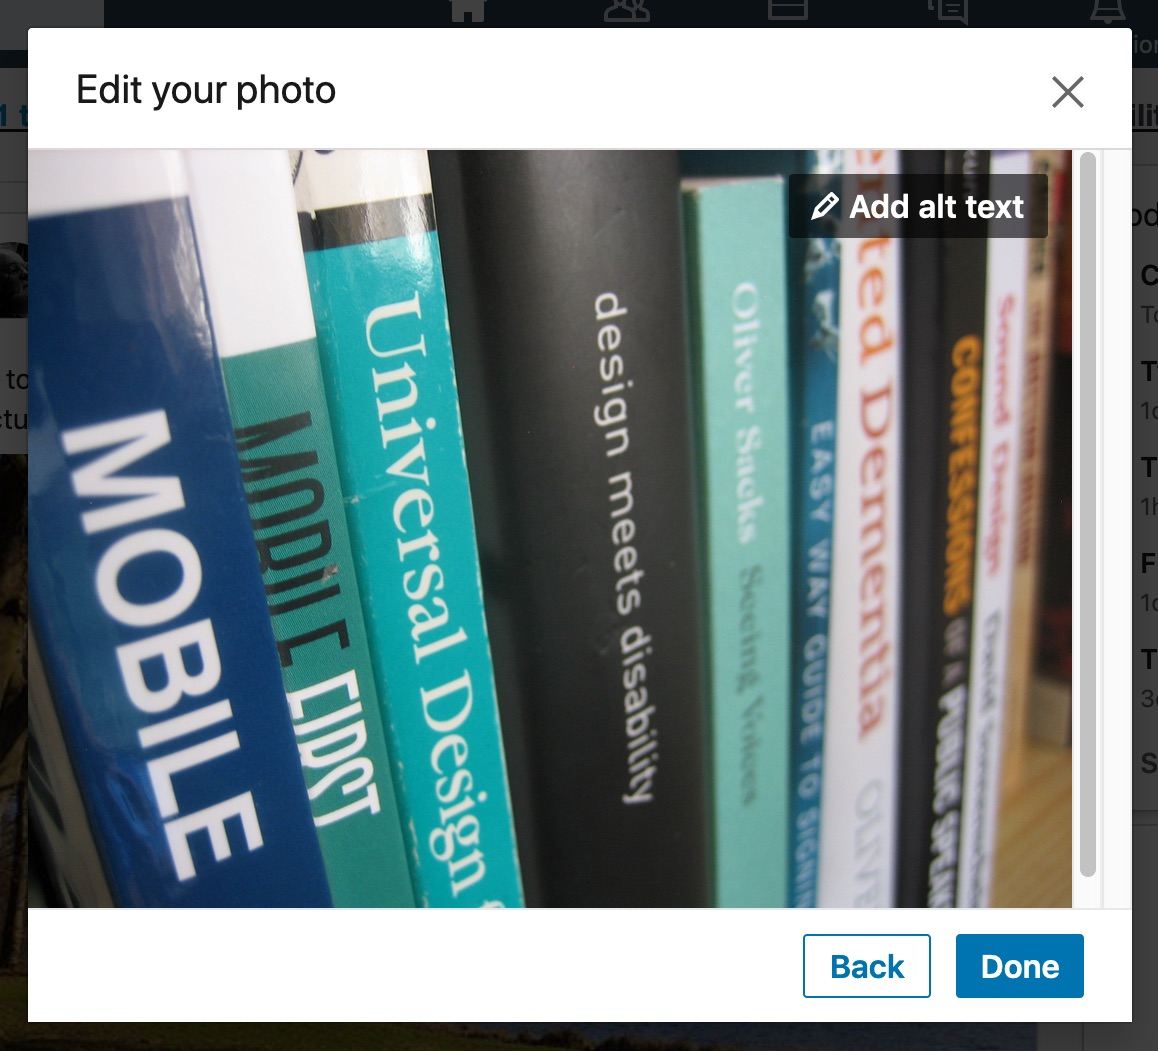 'Edit your photo' dialog showing 'Add alt text' button